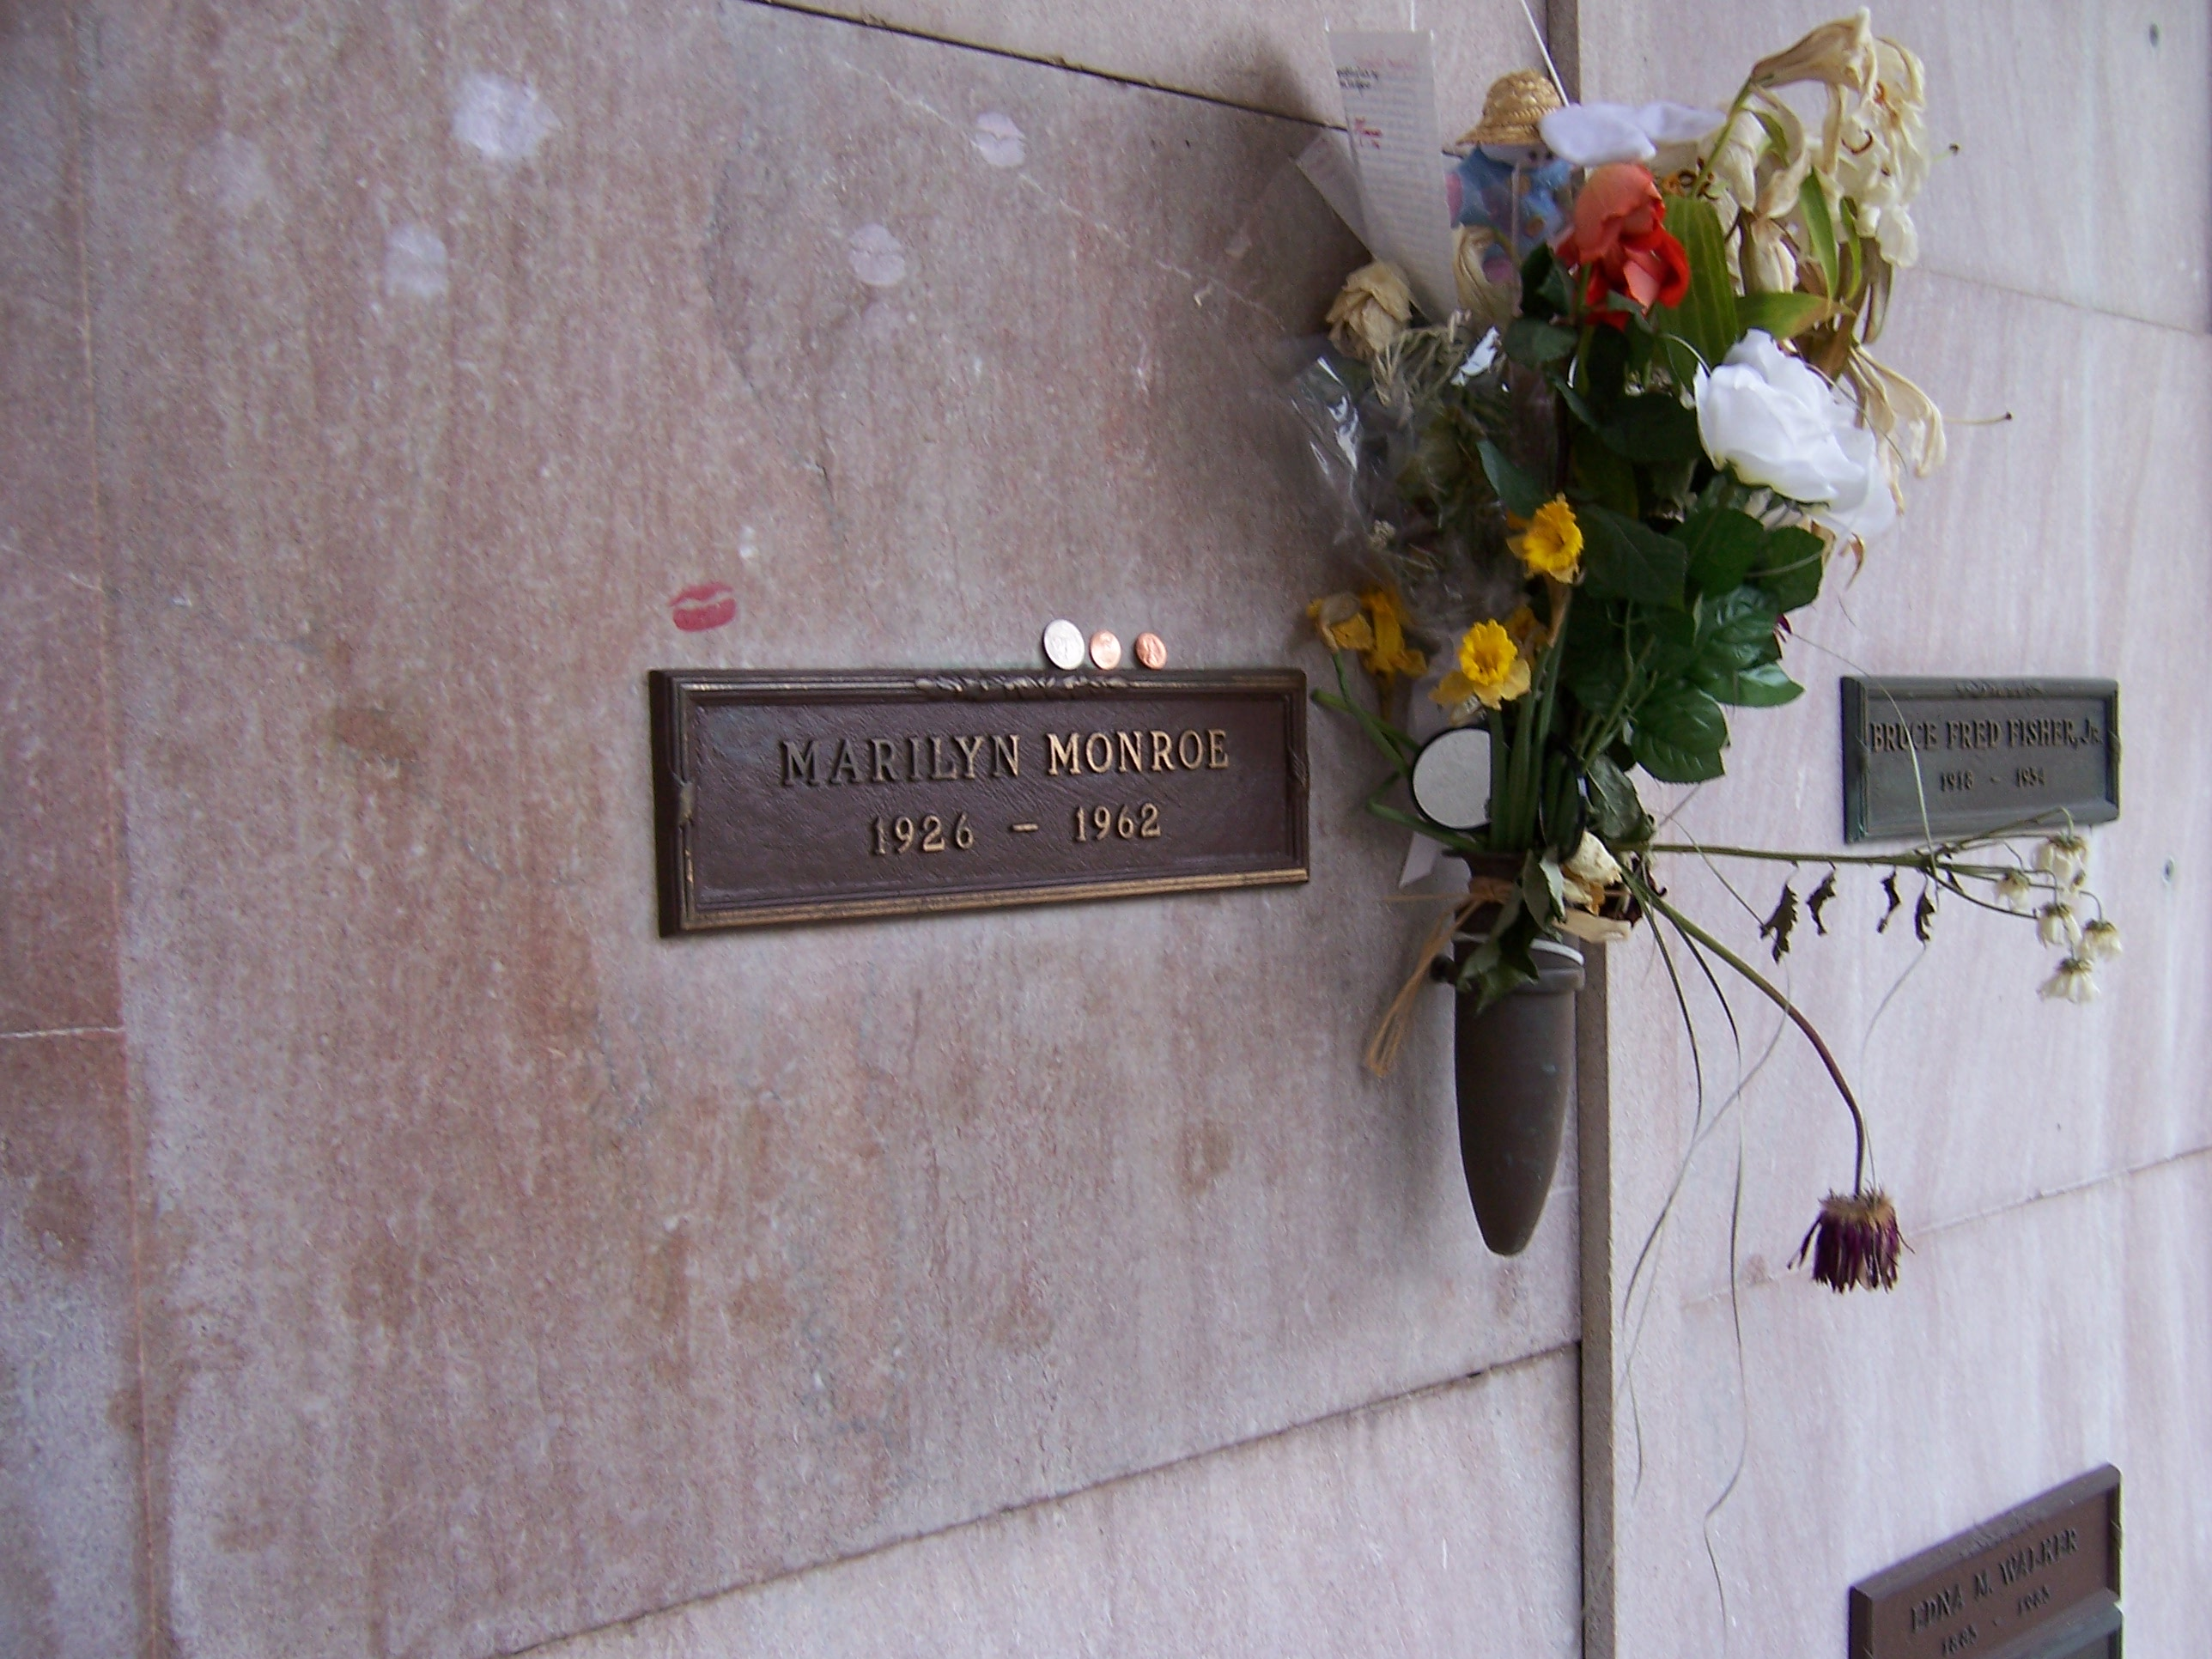 "Photo of Monroe's crypt, taken in 2005. ""Marilyn Monroe, 1926–1962"" is written on a plaque. The crypt has some lipstick prints left by visitors and flowers are placed in a vase attached to it."